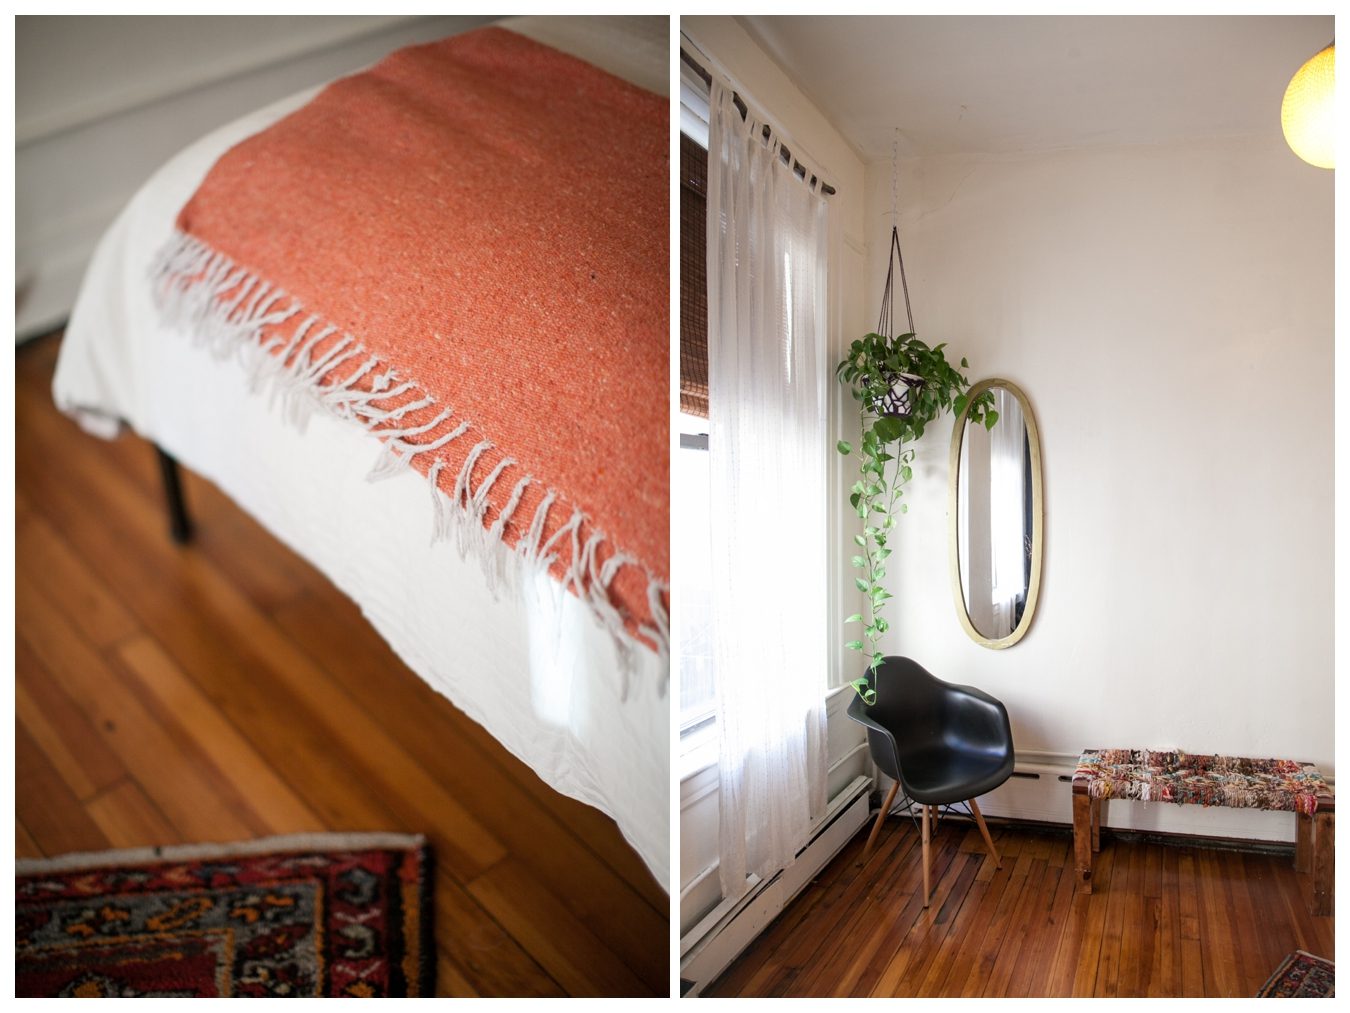 Lily Glass Photography Editorial 3B Bed & Breakfast, Brooklyn, NY